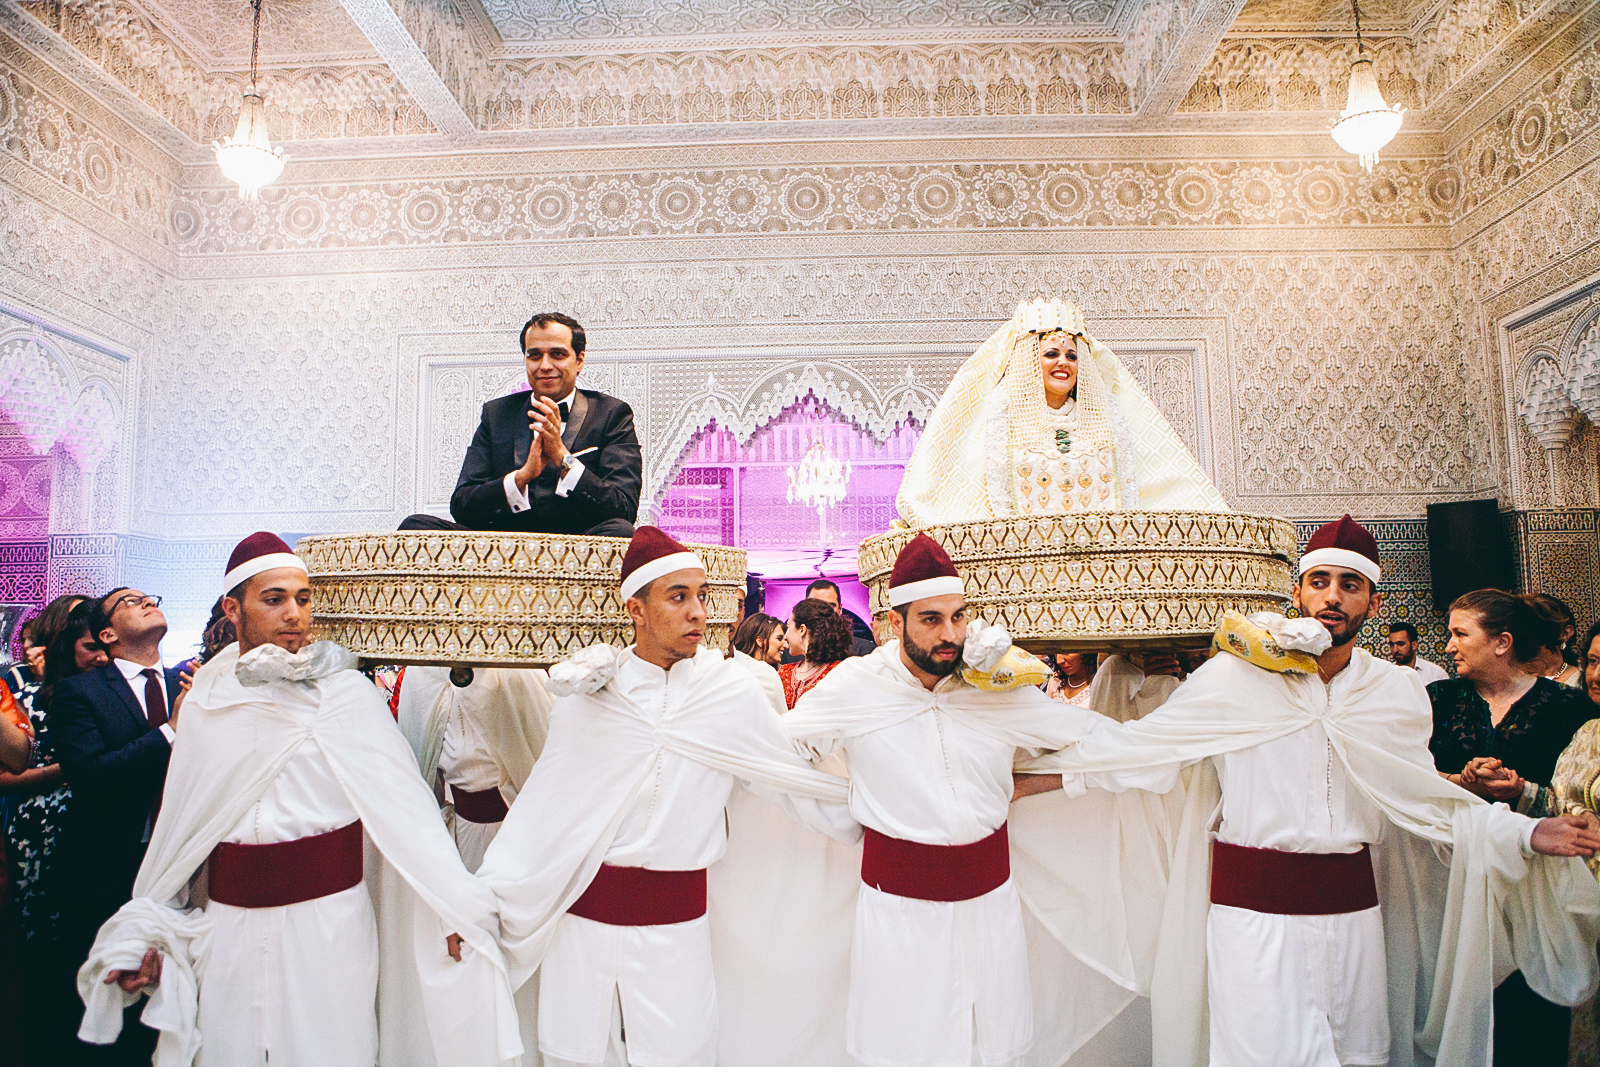 traditional_moroccan_wedding_photographry_casablanca_morocco_houda_vivek_ebony_siovhan_bokeh_photography_115.jpg